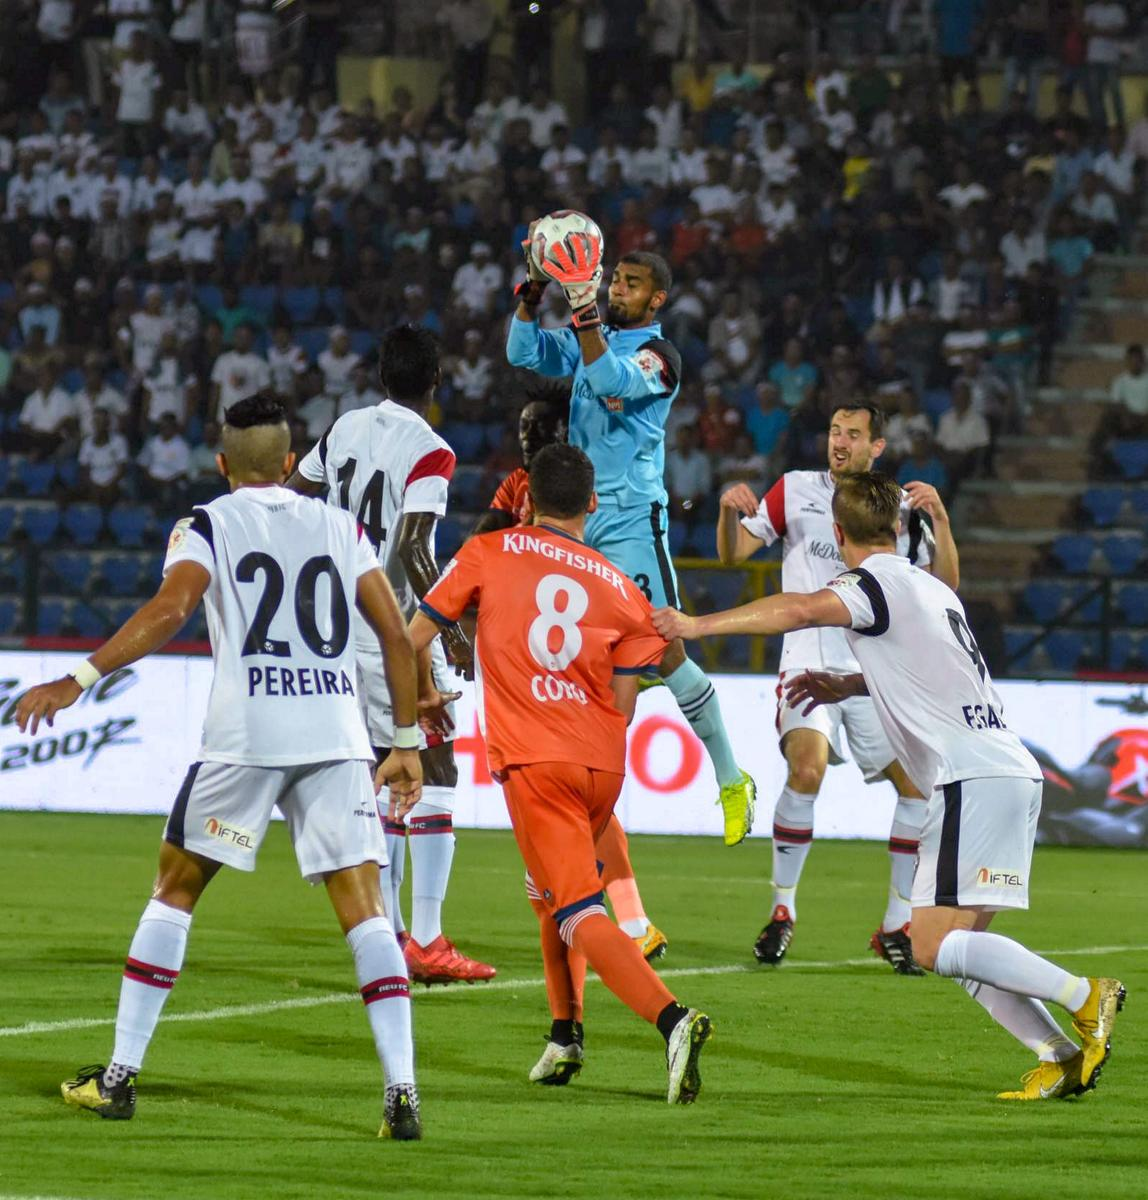 ACTION-PACKED: NorthEast United FC goalkeeper TP Rehenesh collects the ball during their match against FC Goa during their ISL match in Guwahati on Monday. (PTI Photo)